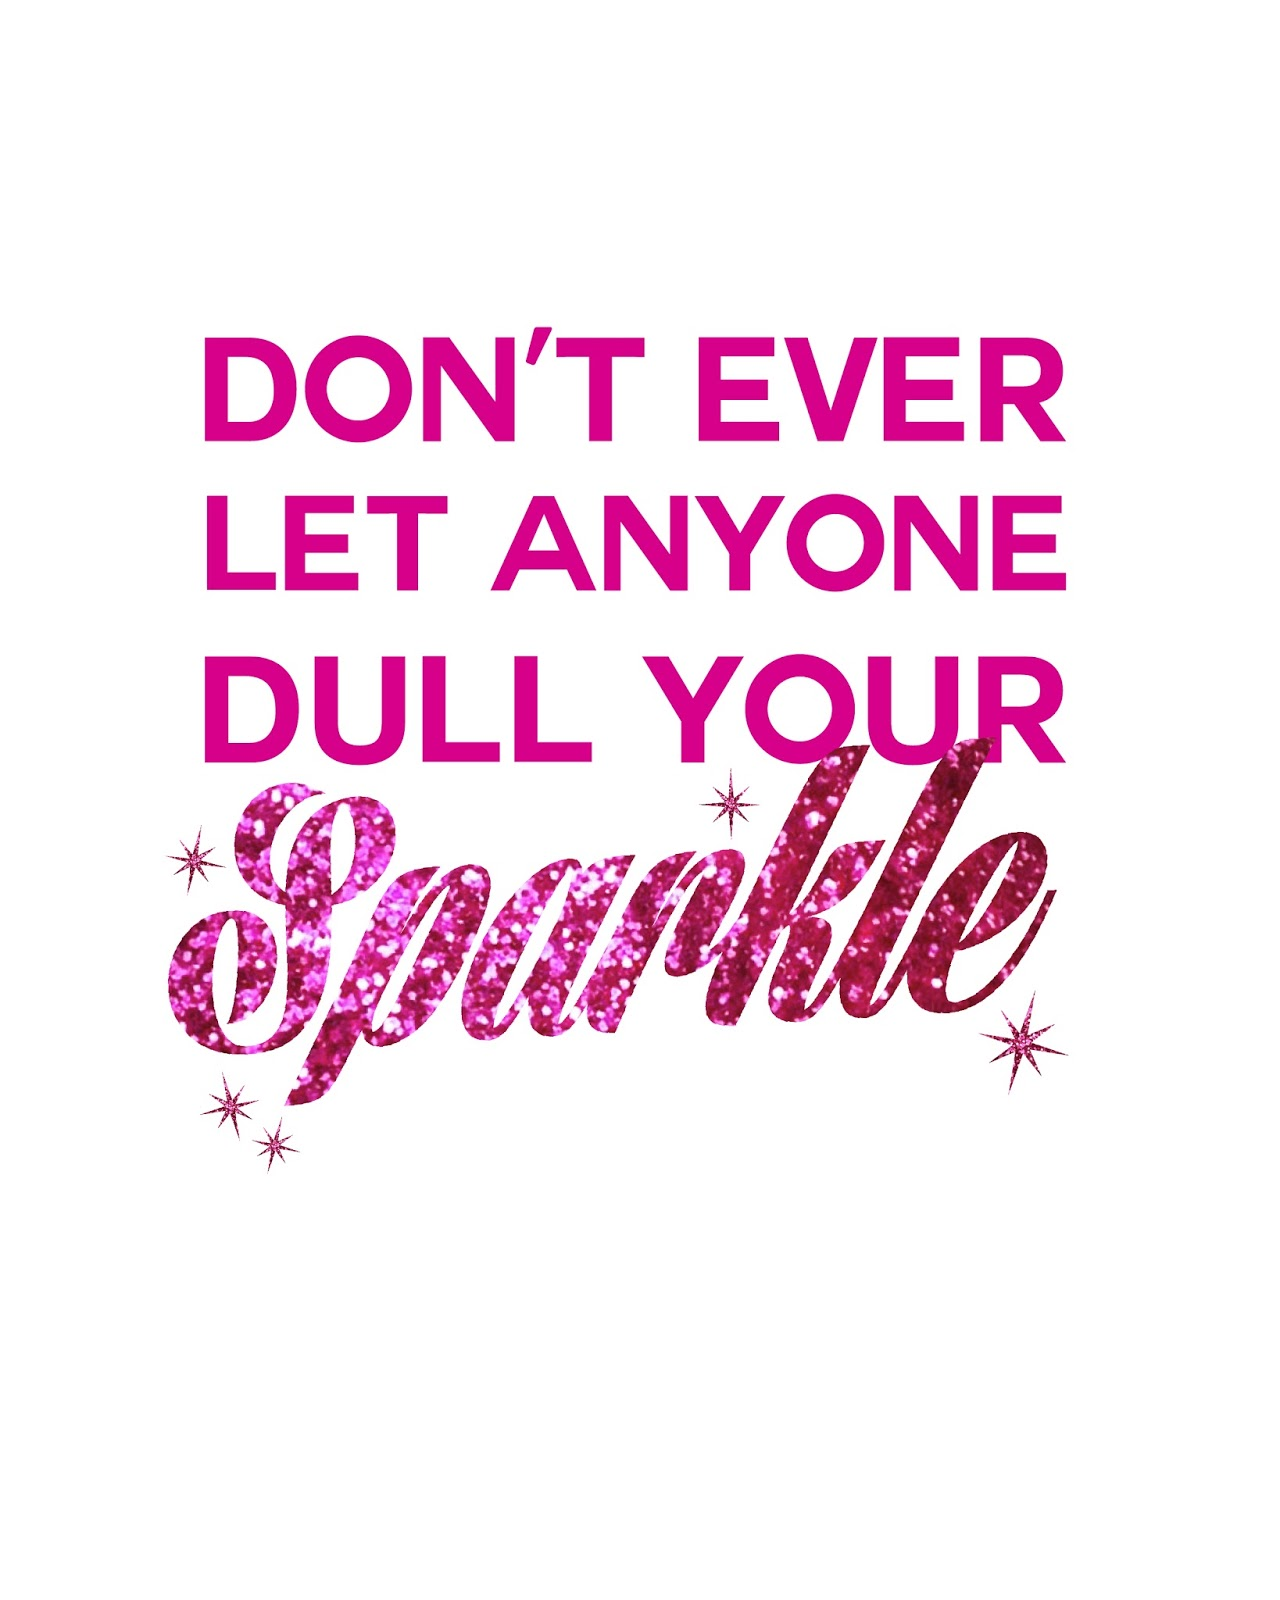 FREEBIES // DONT EVER LET ANYONE DULL YOUR SPARKLE - Oh